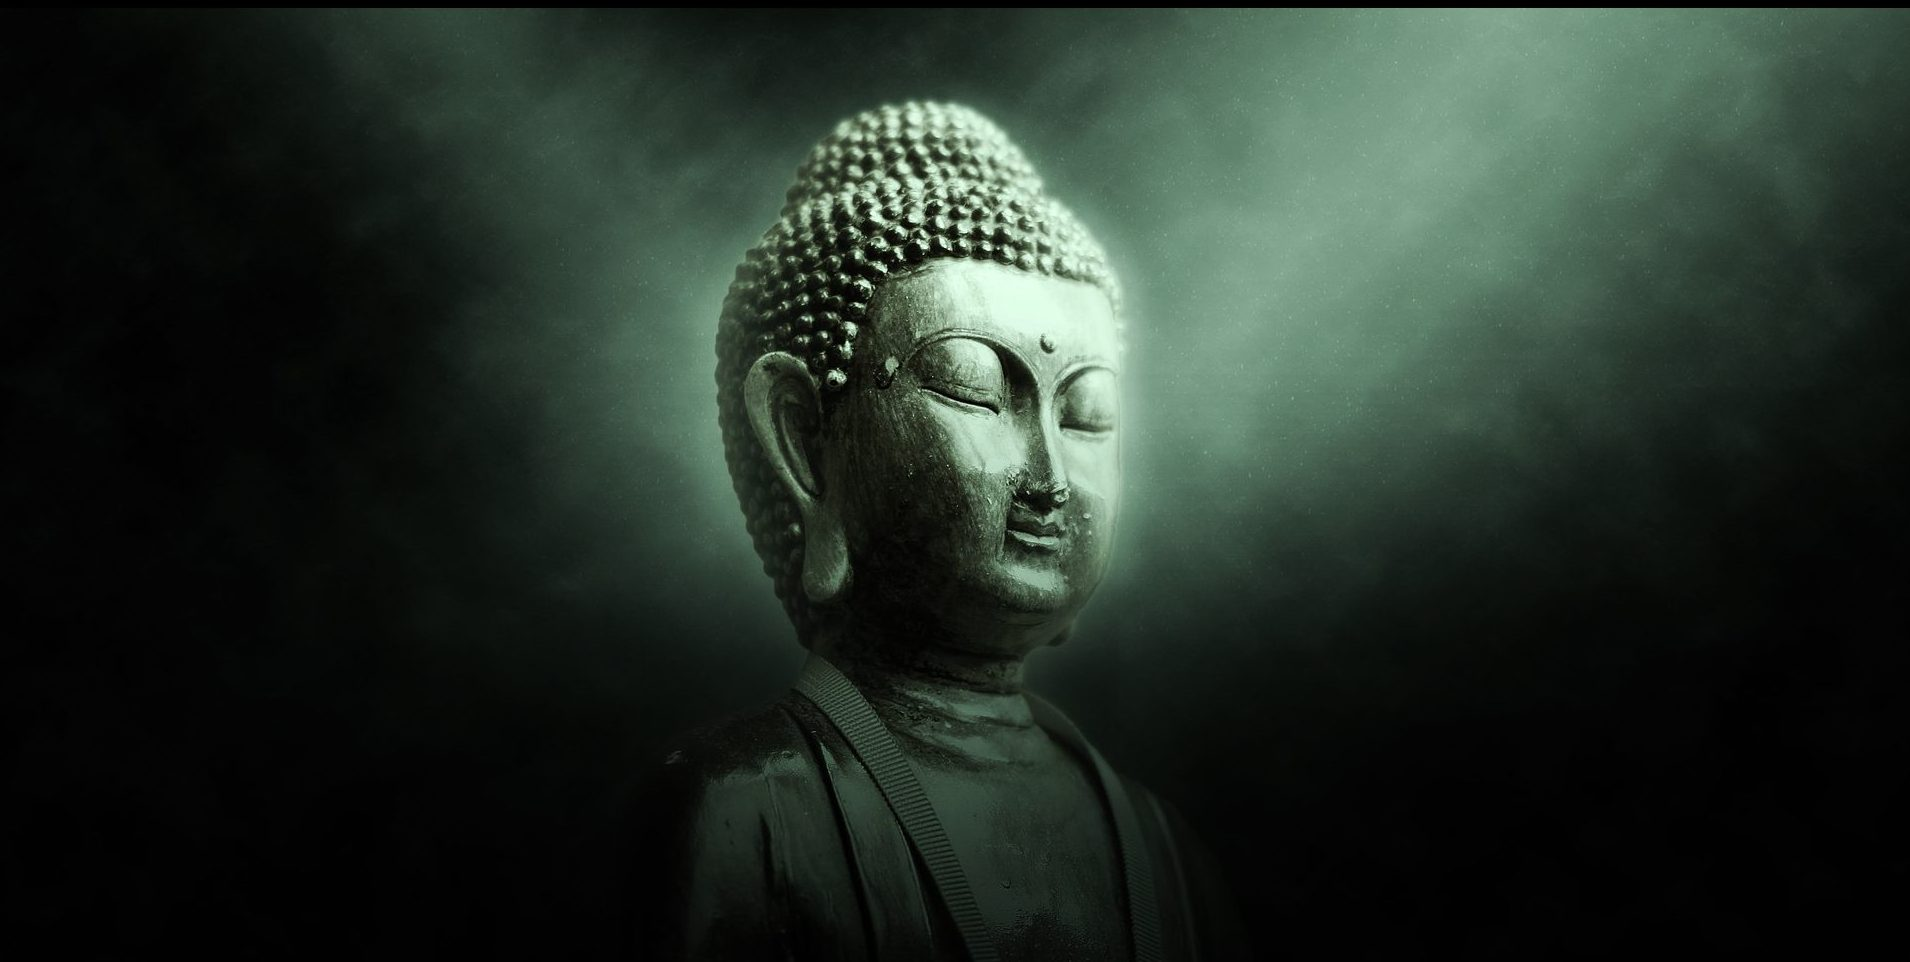 Buddha's Legendary Enlightenment